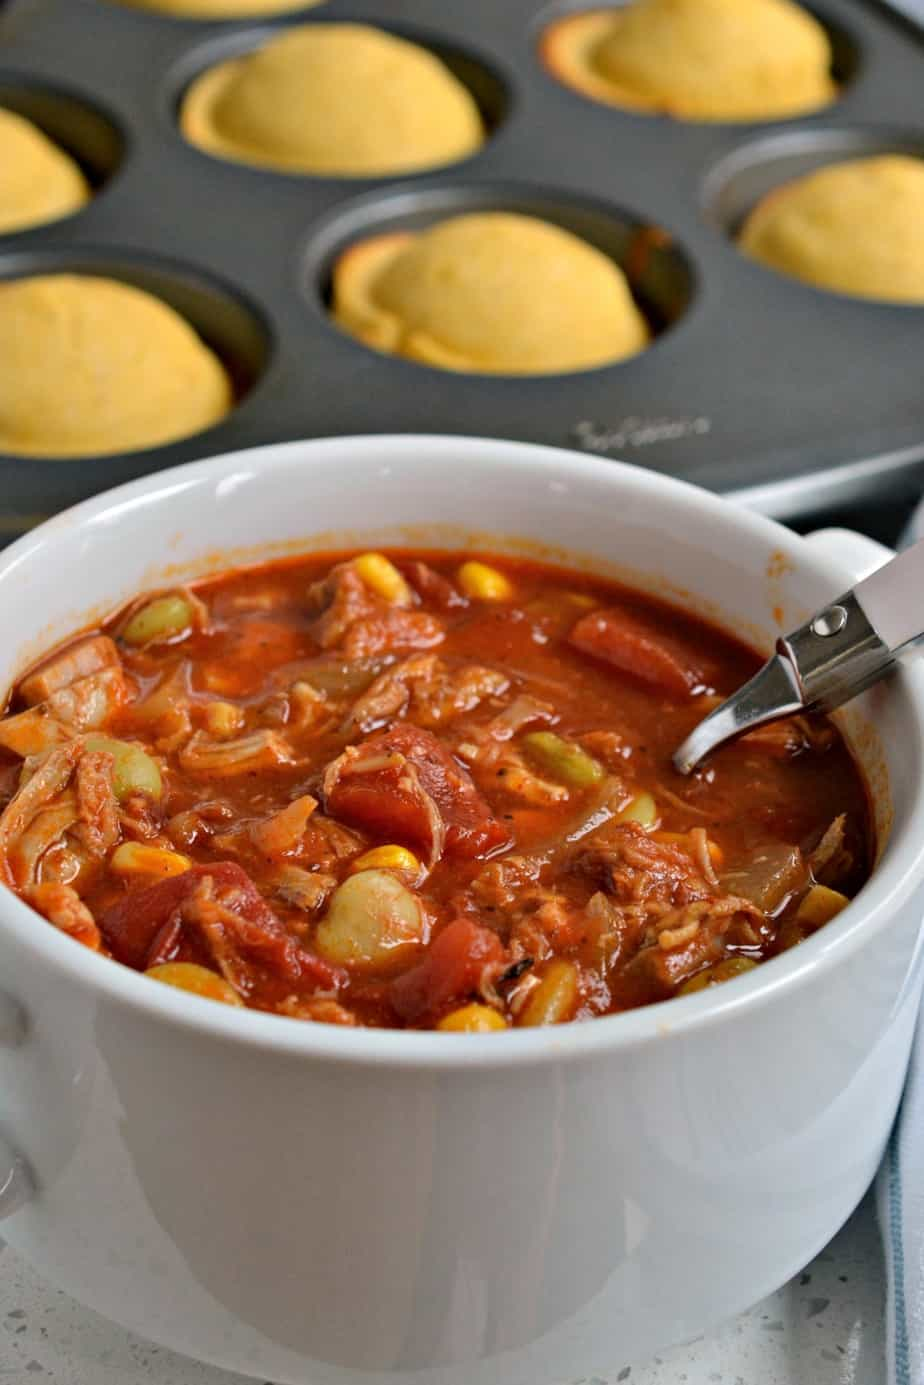 With already cooked meats this Brunswick Stew recipe comes together quickly and easily.